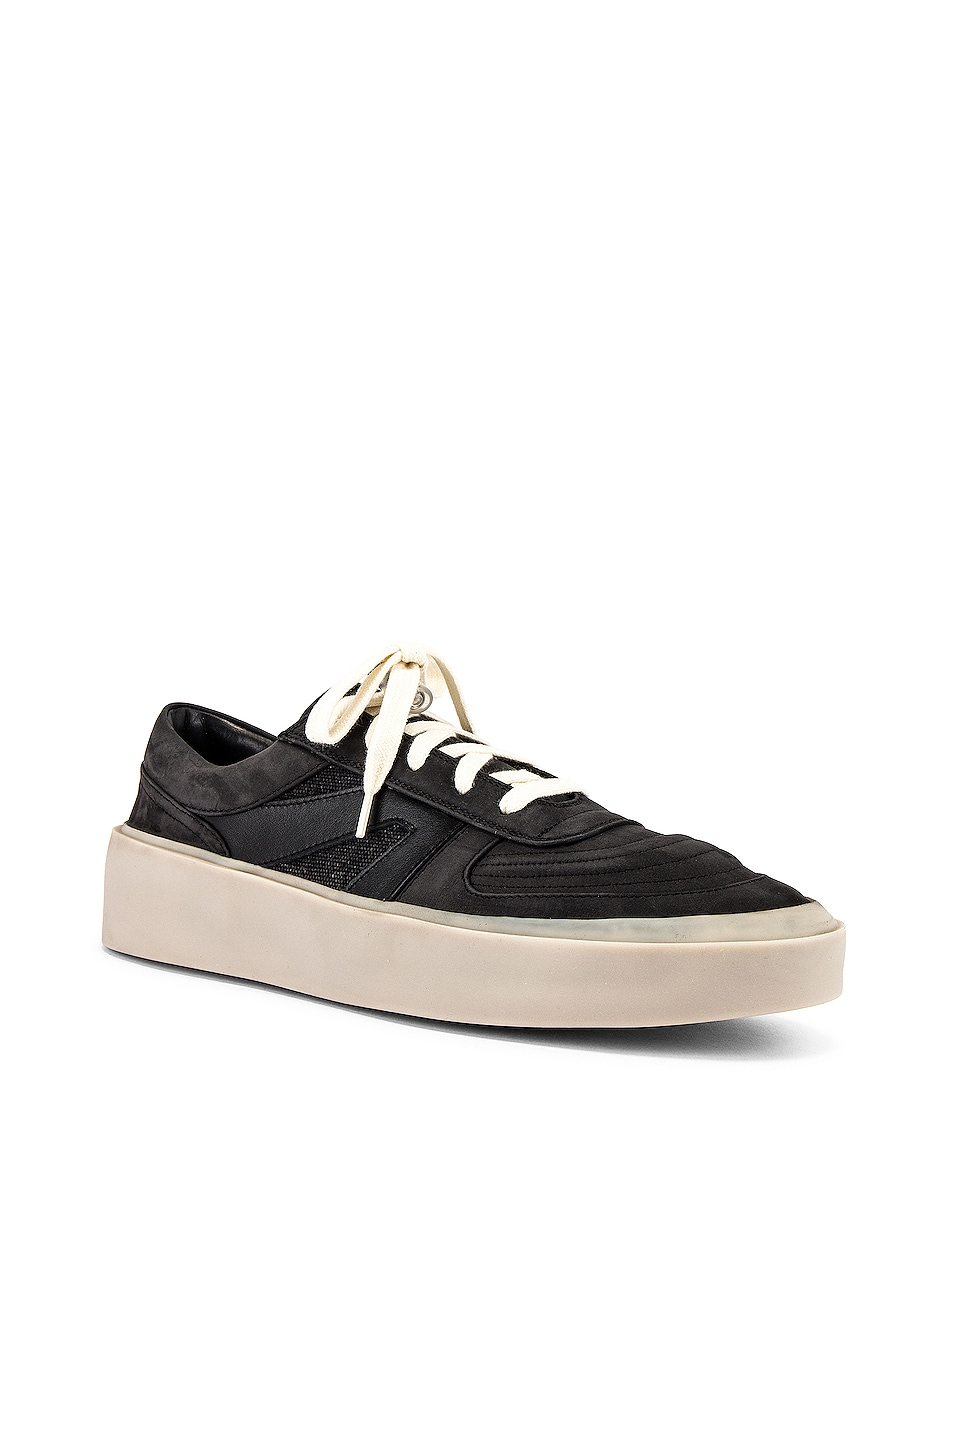 Image 1 of Fear of God Strapless Skate Mid in Black & Grey Gum Sole